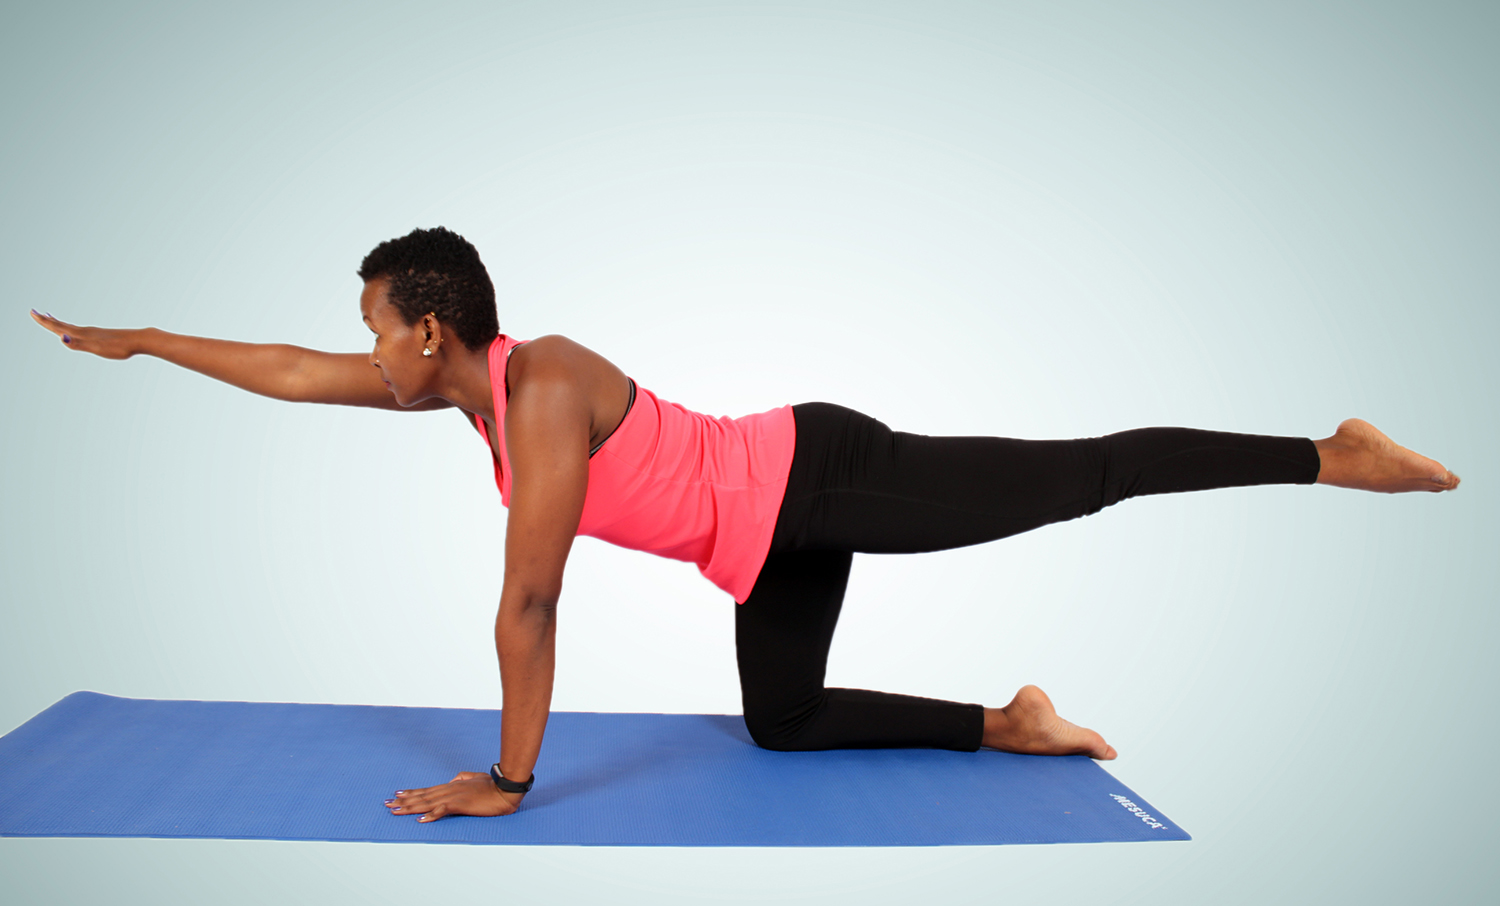 Woman Doing Bird Dog Exercise To Strengthen Core High